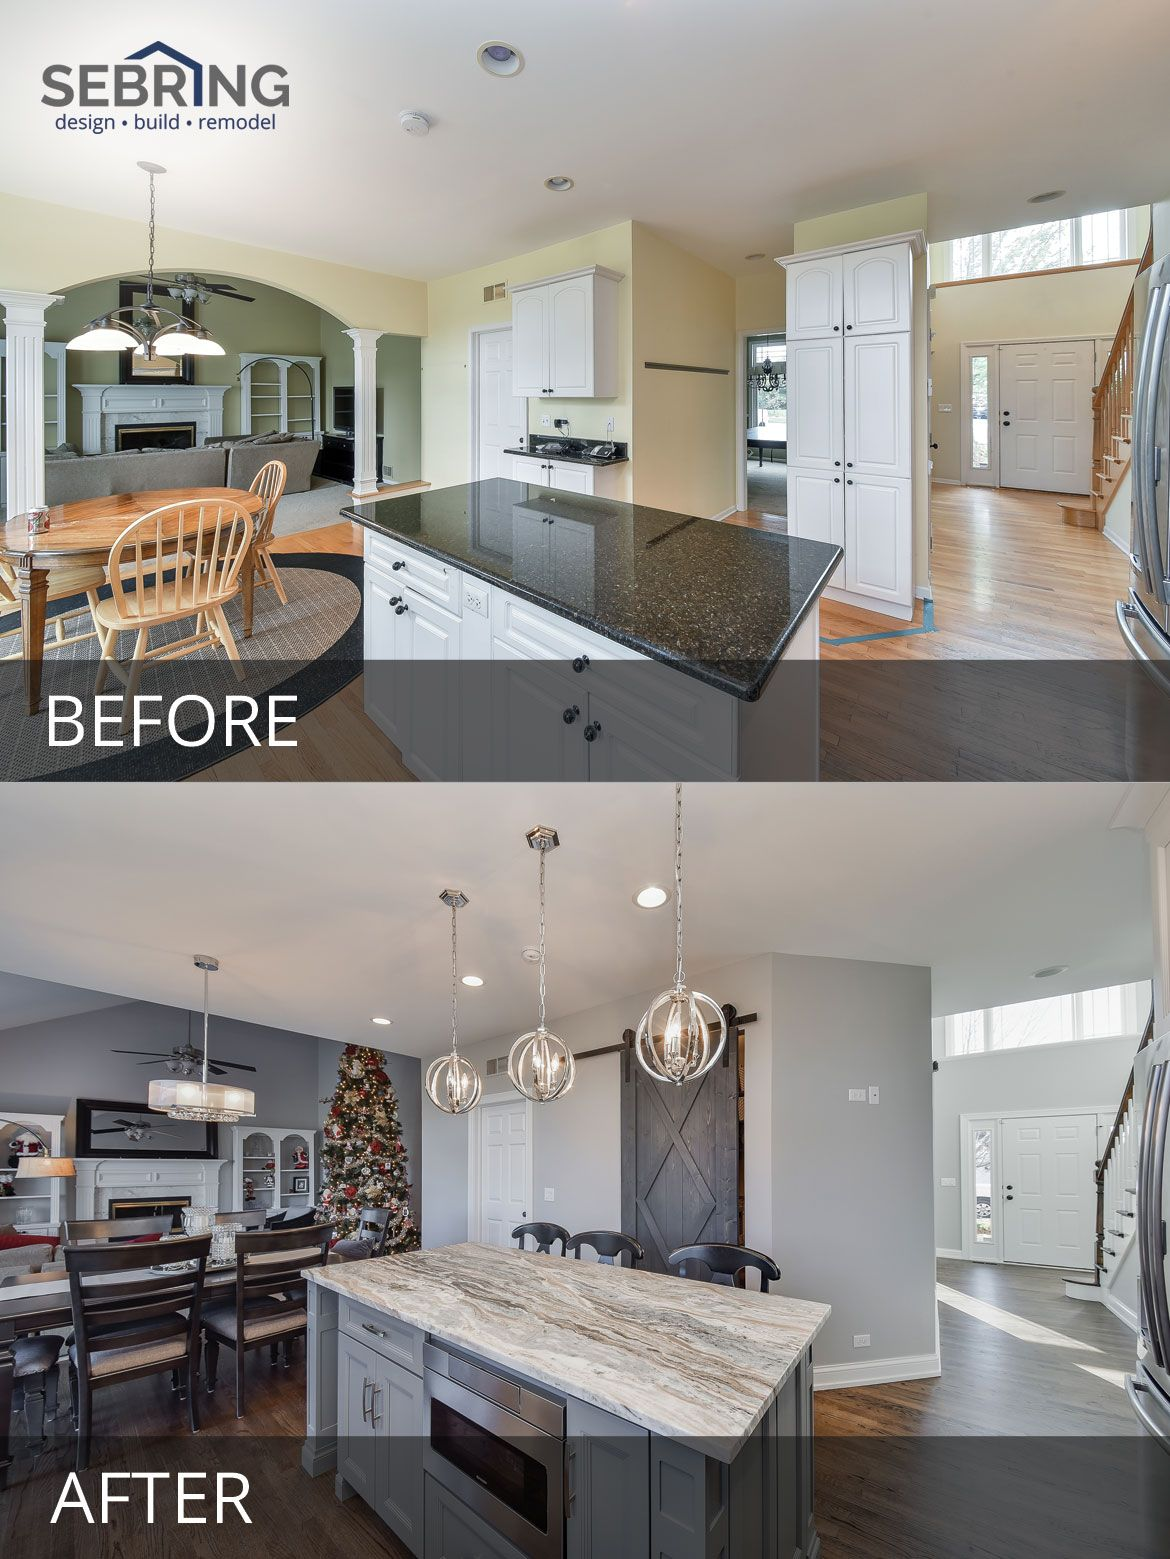 Kai S Kitchen Before After Pictures Kitchen Remodel Countertops Kitchen Remodel Small Luxury Kitchens